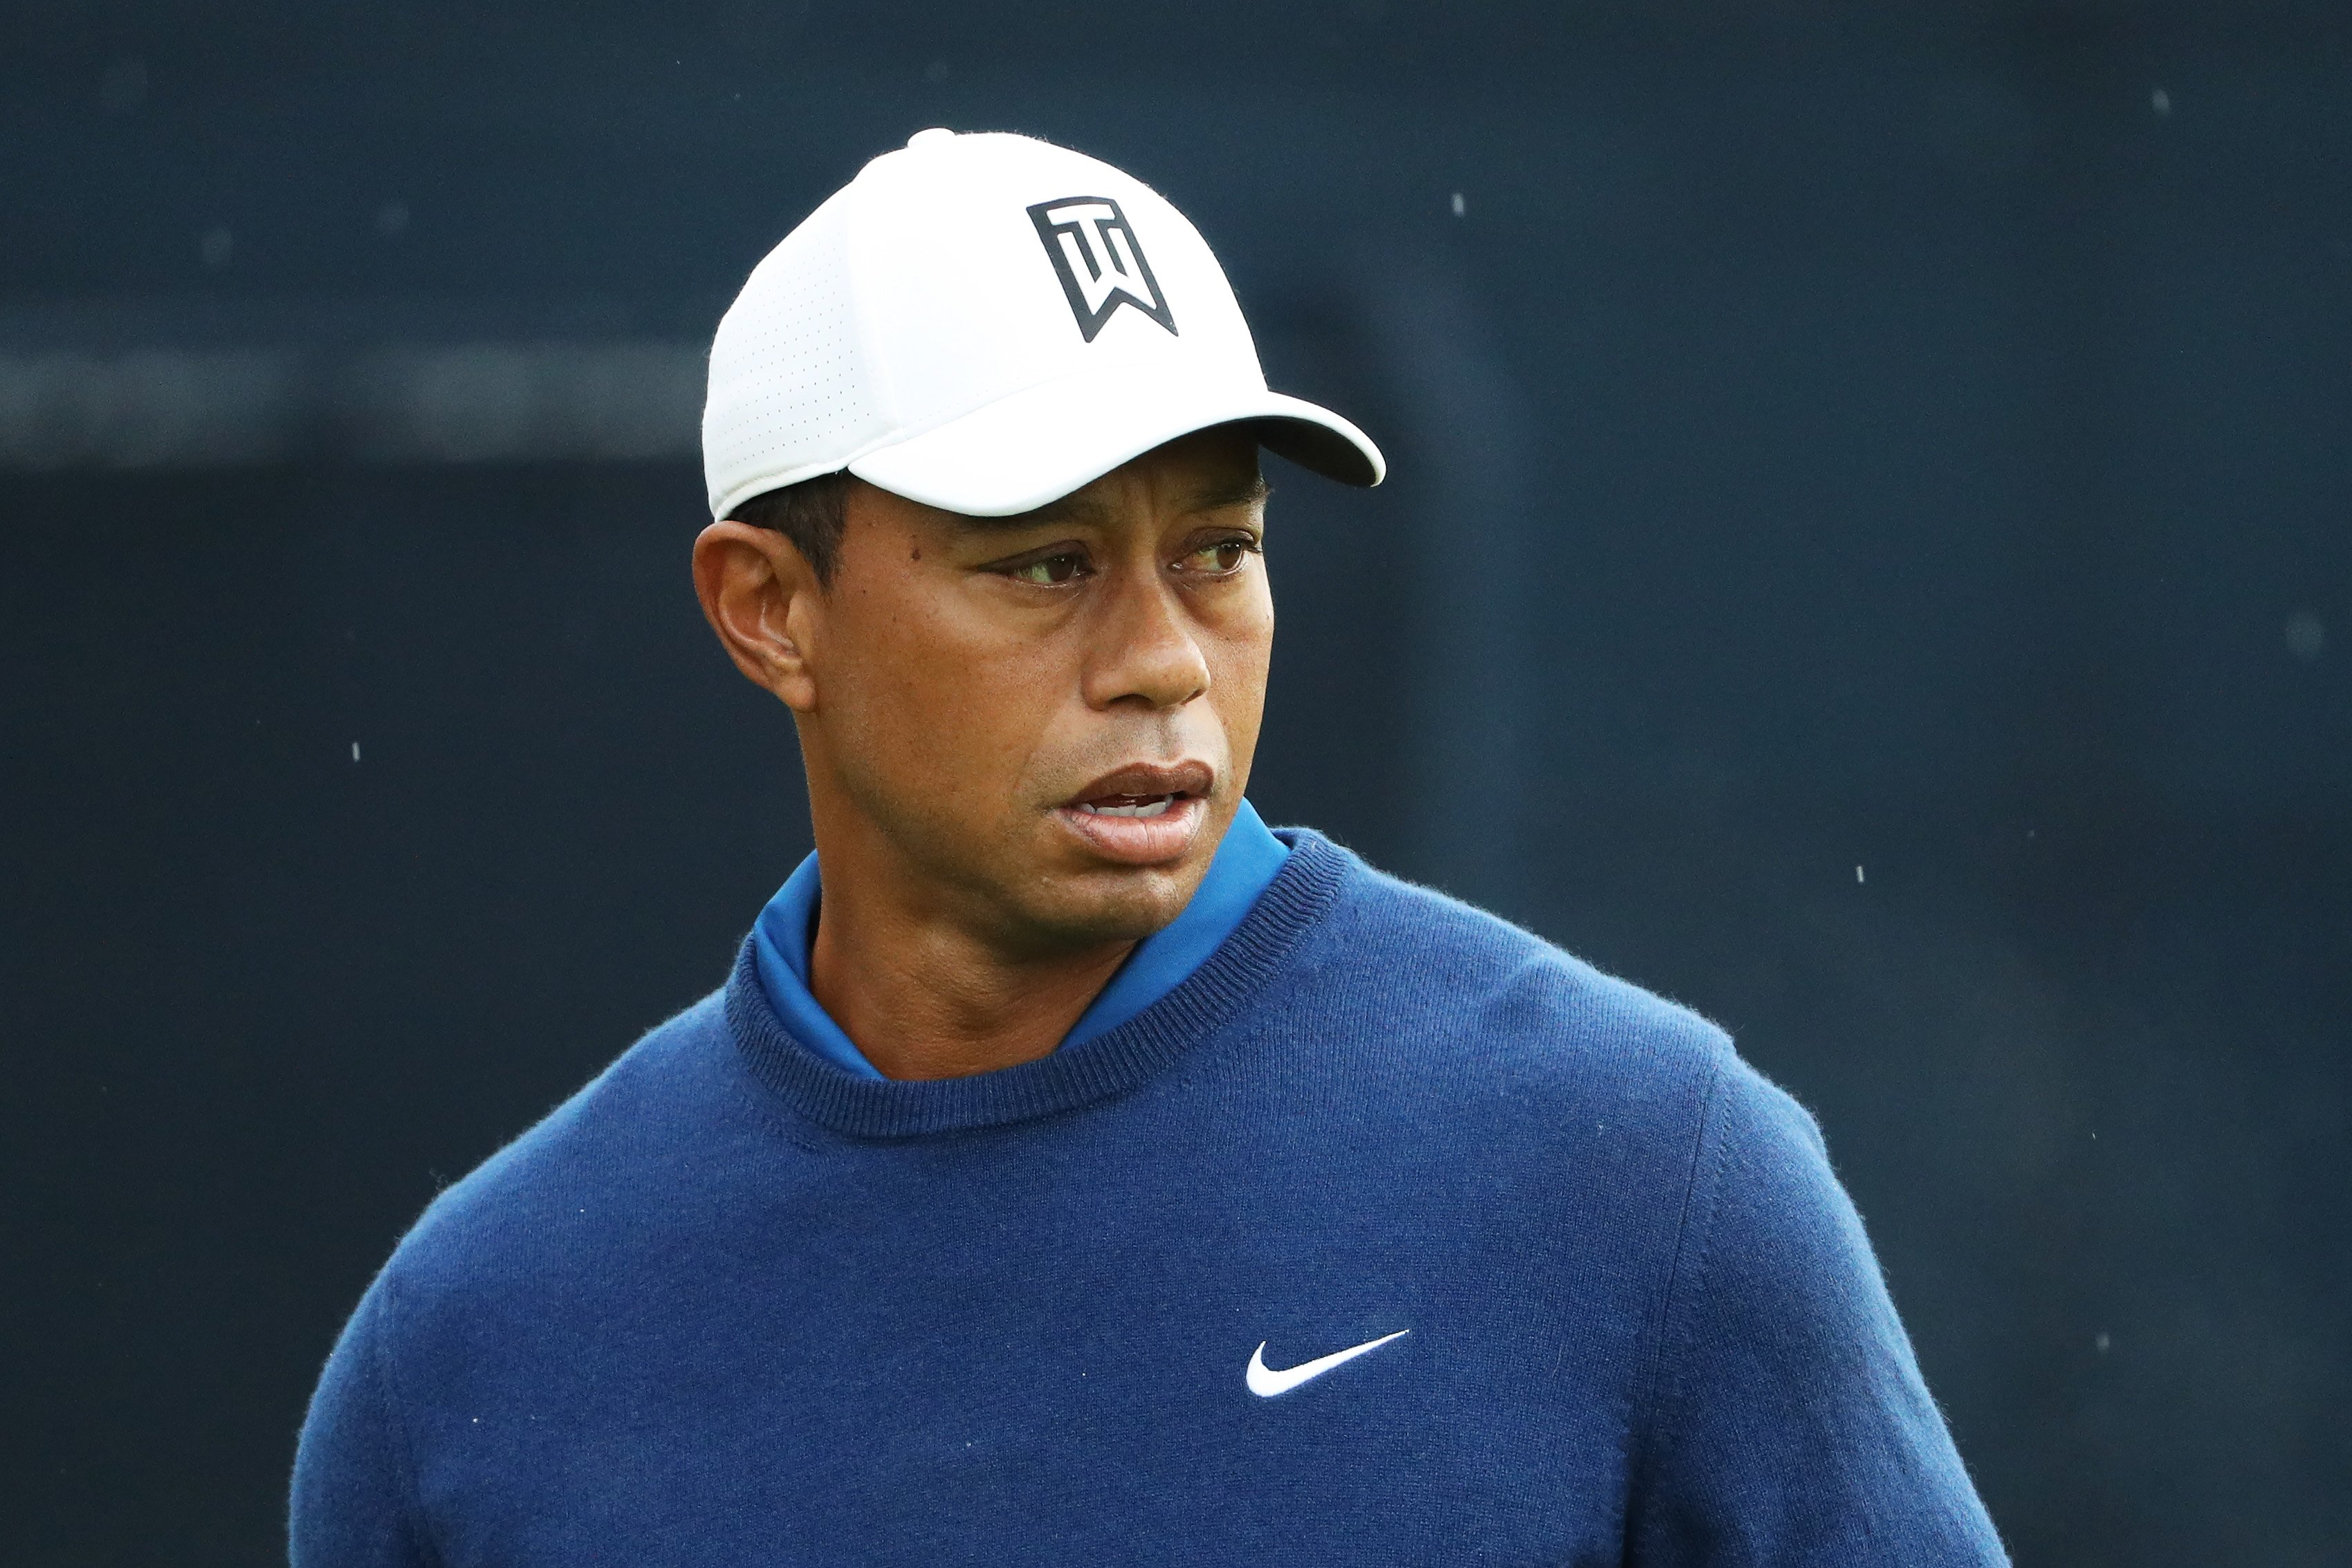 Tiger Woods of the United States warms up on the practice range during the first round of the 2019 PGA Championship at the Bethpage Black course | Photo: Getty Images